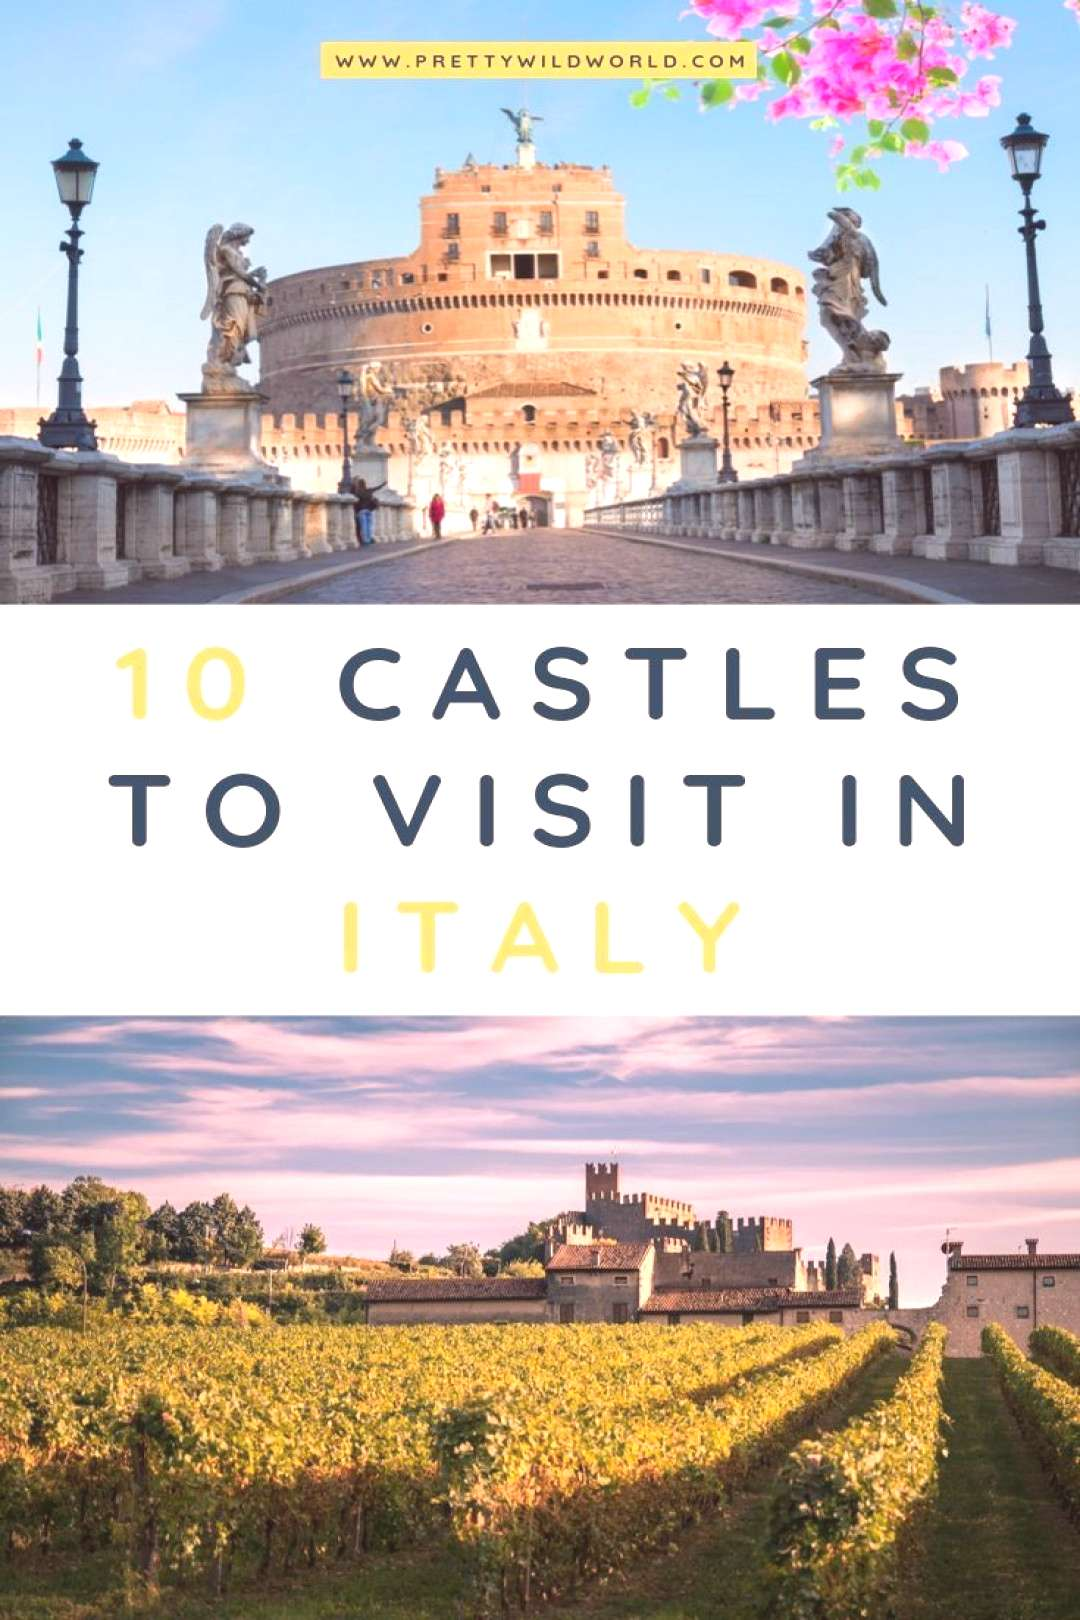 Top 15 Beautiful Castles in Italy Castles in Italy | Looking for something interesting and historic